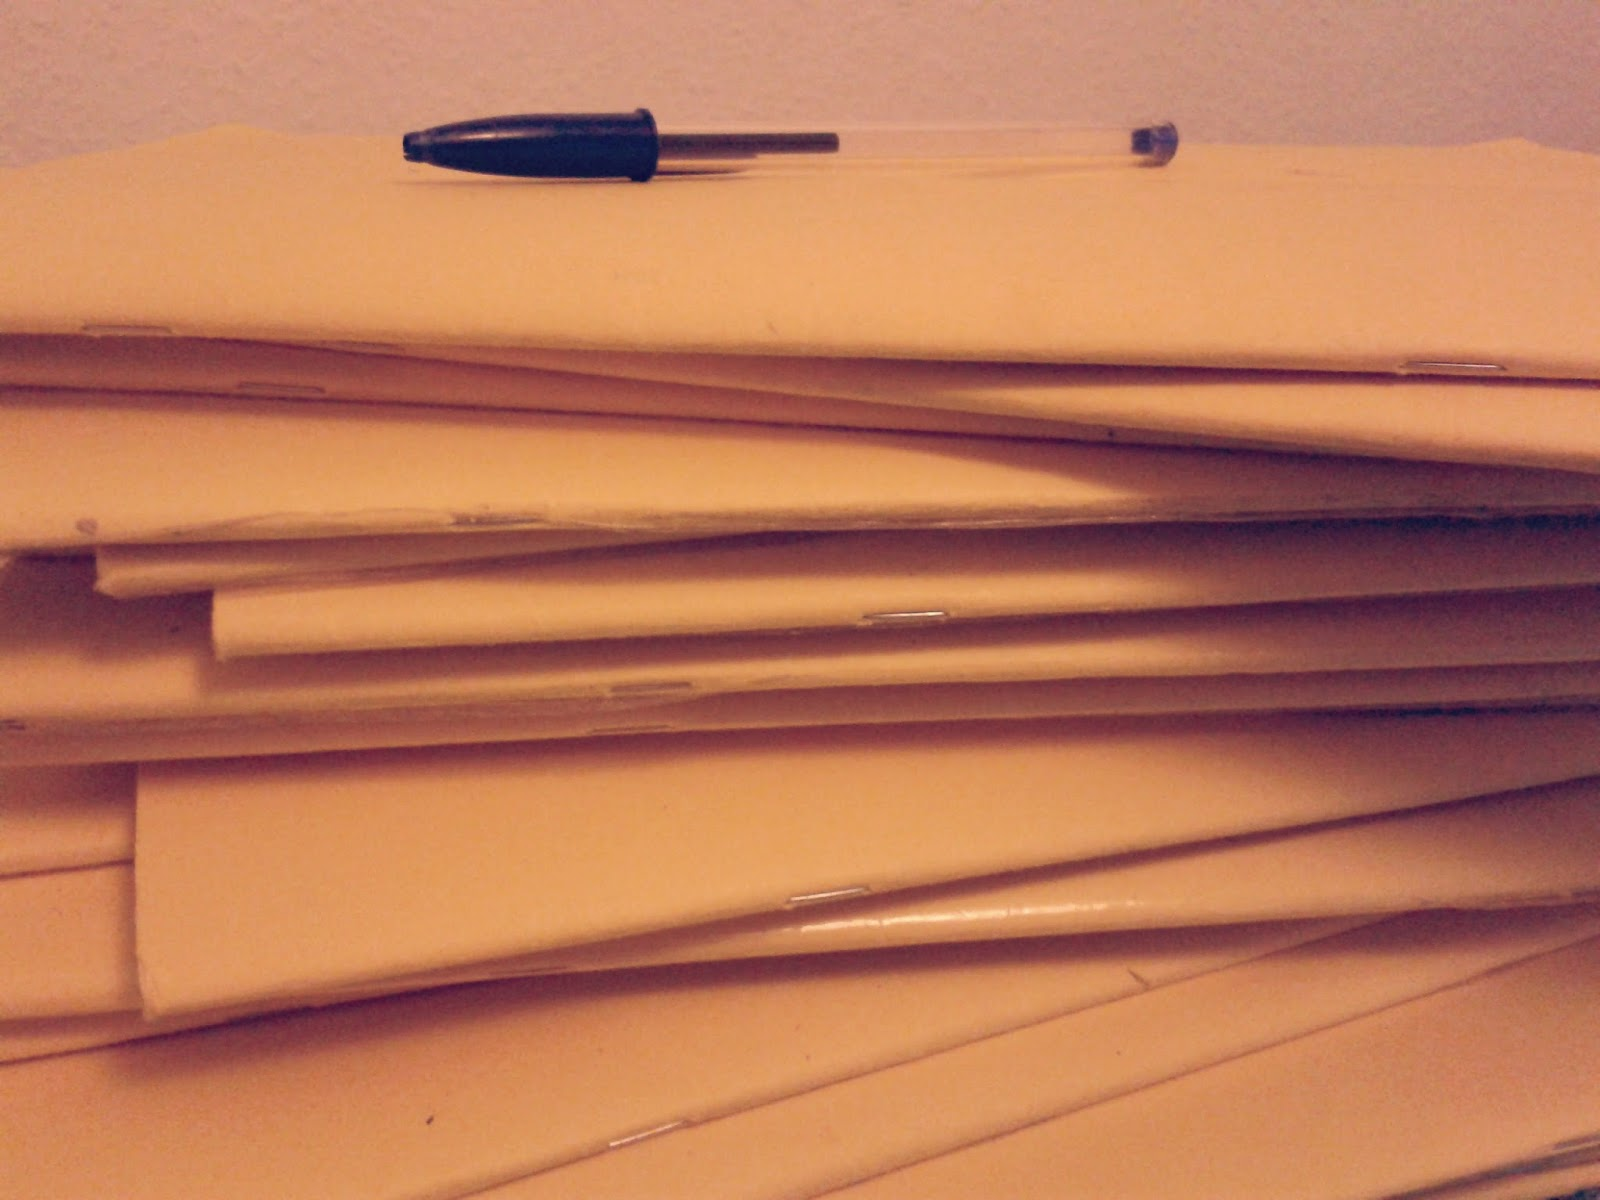 Project 365 day 71 - Pile of workbooks // 76sunflowers